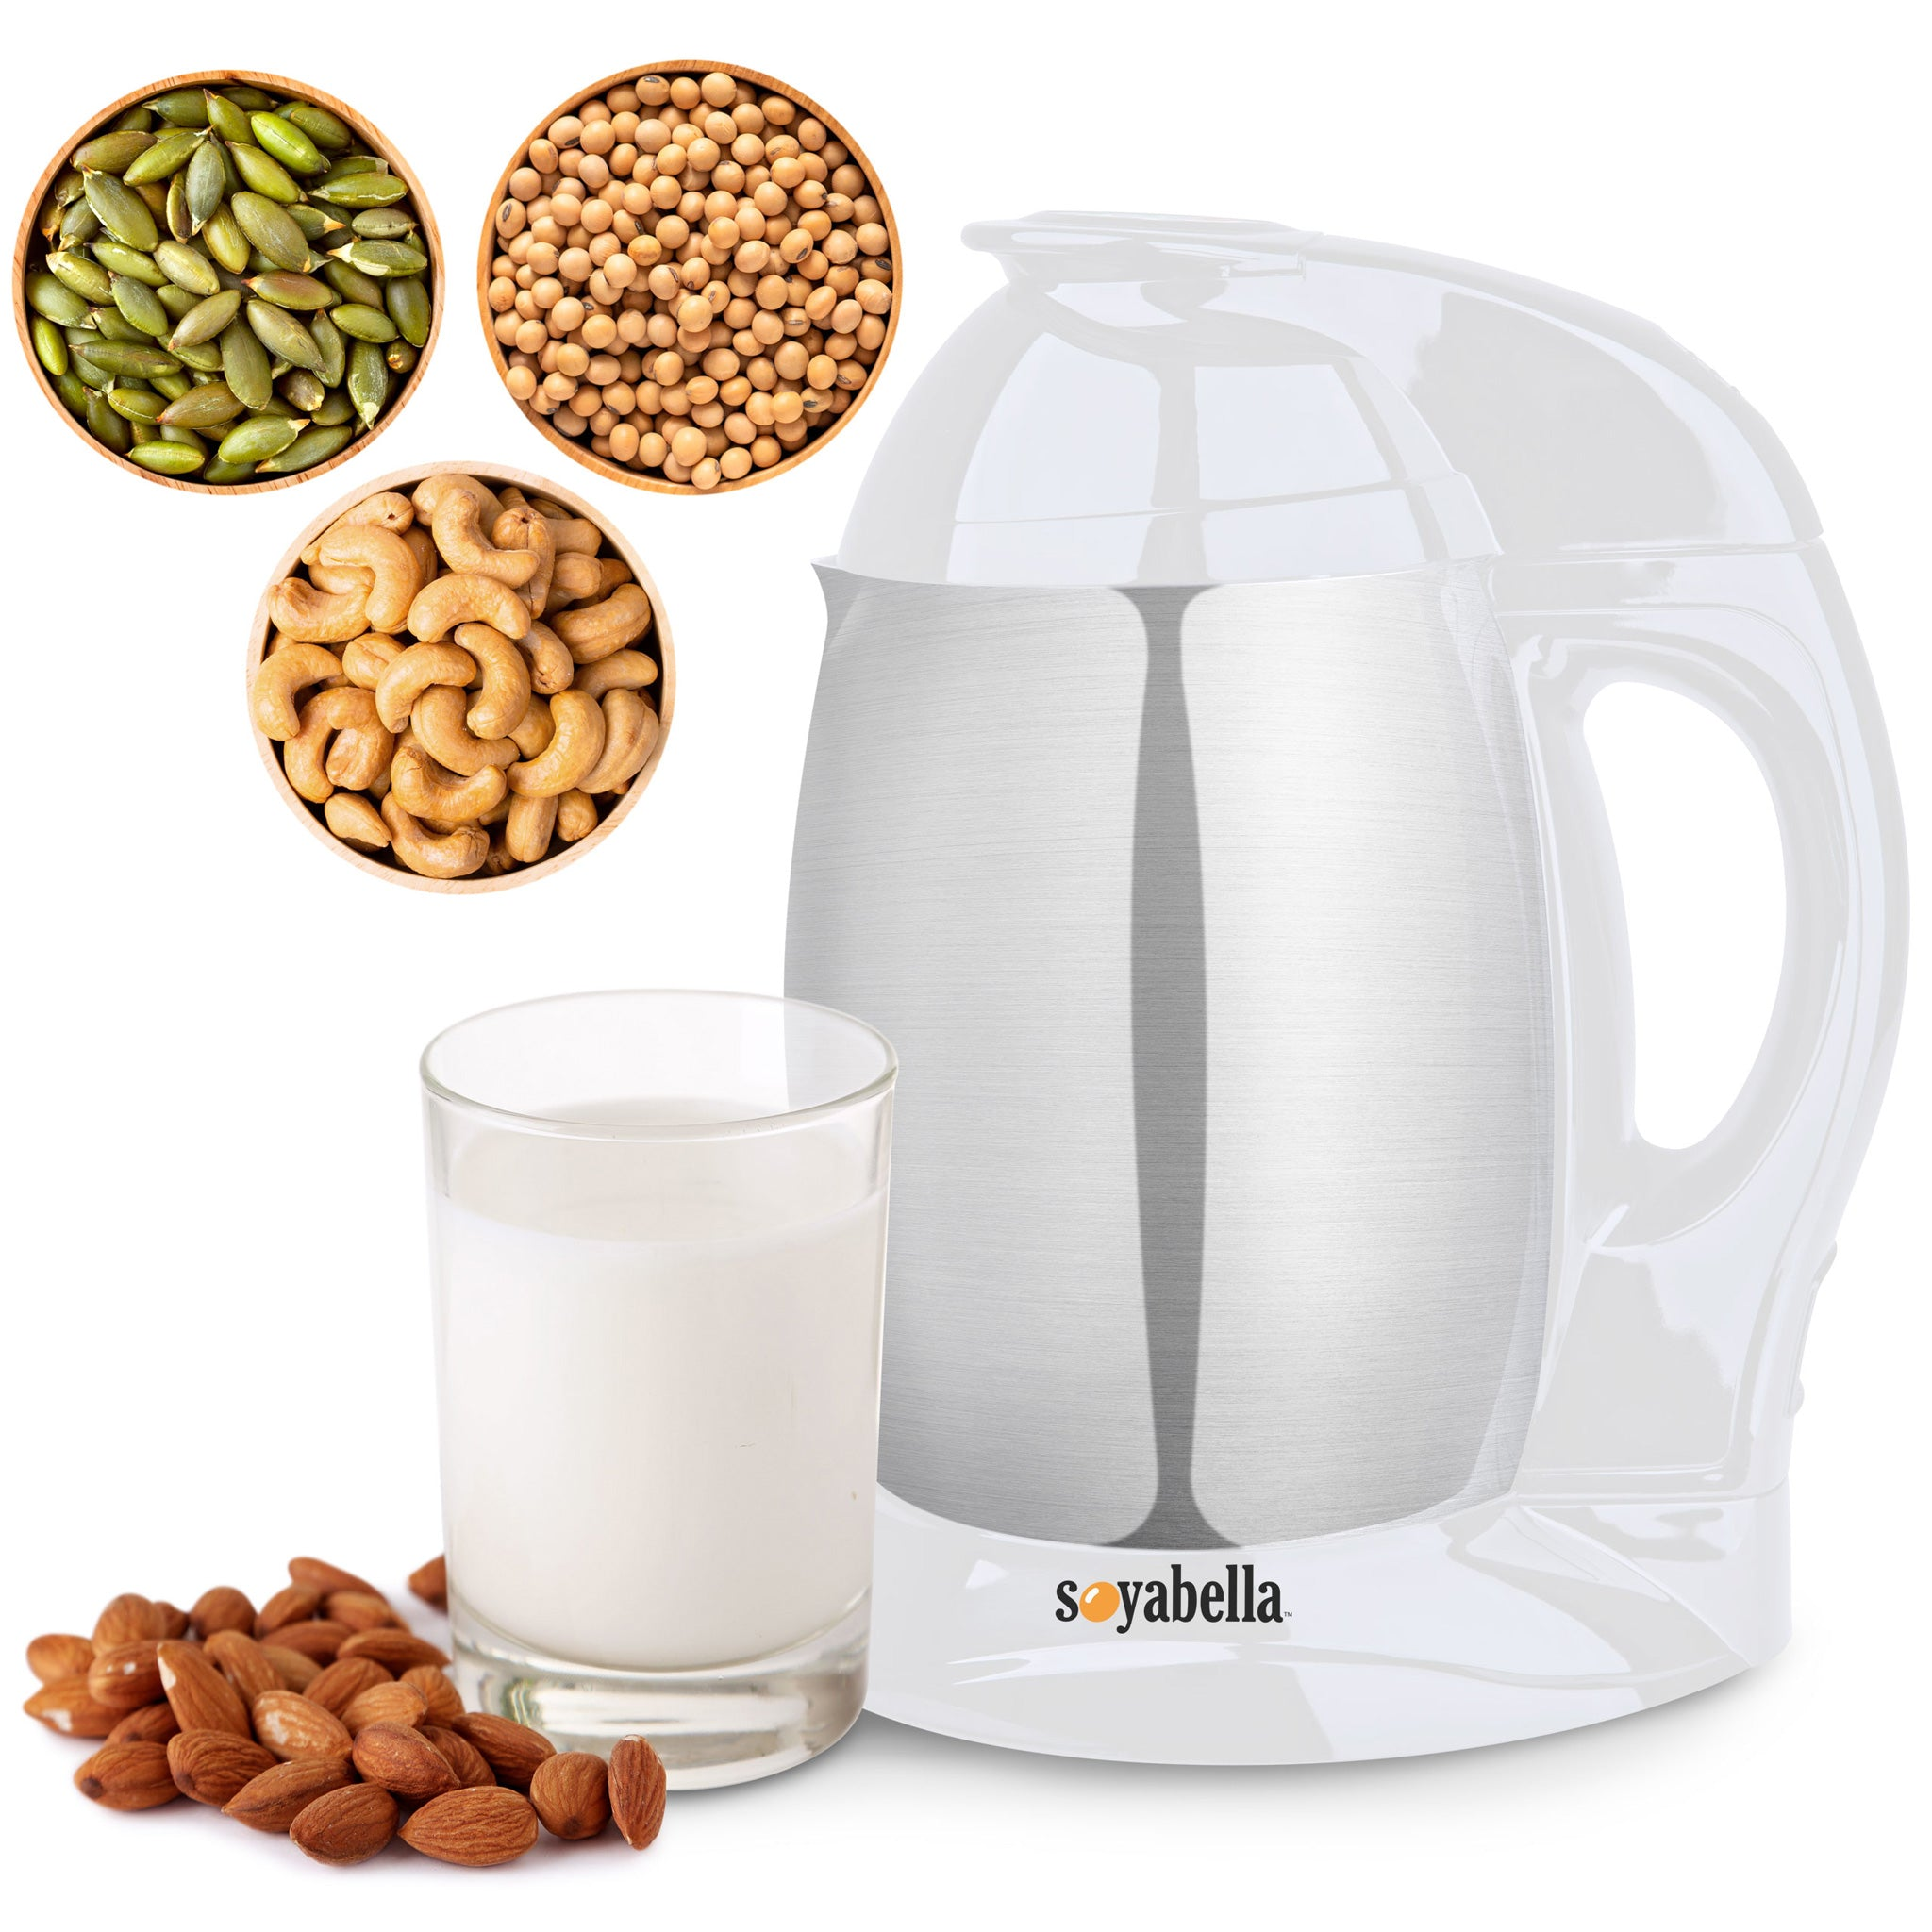 Soyabella® Automatic Nut & Seed Milk Maker